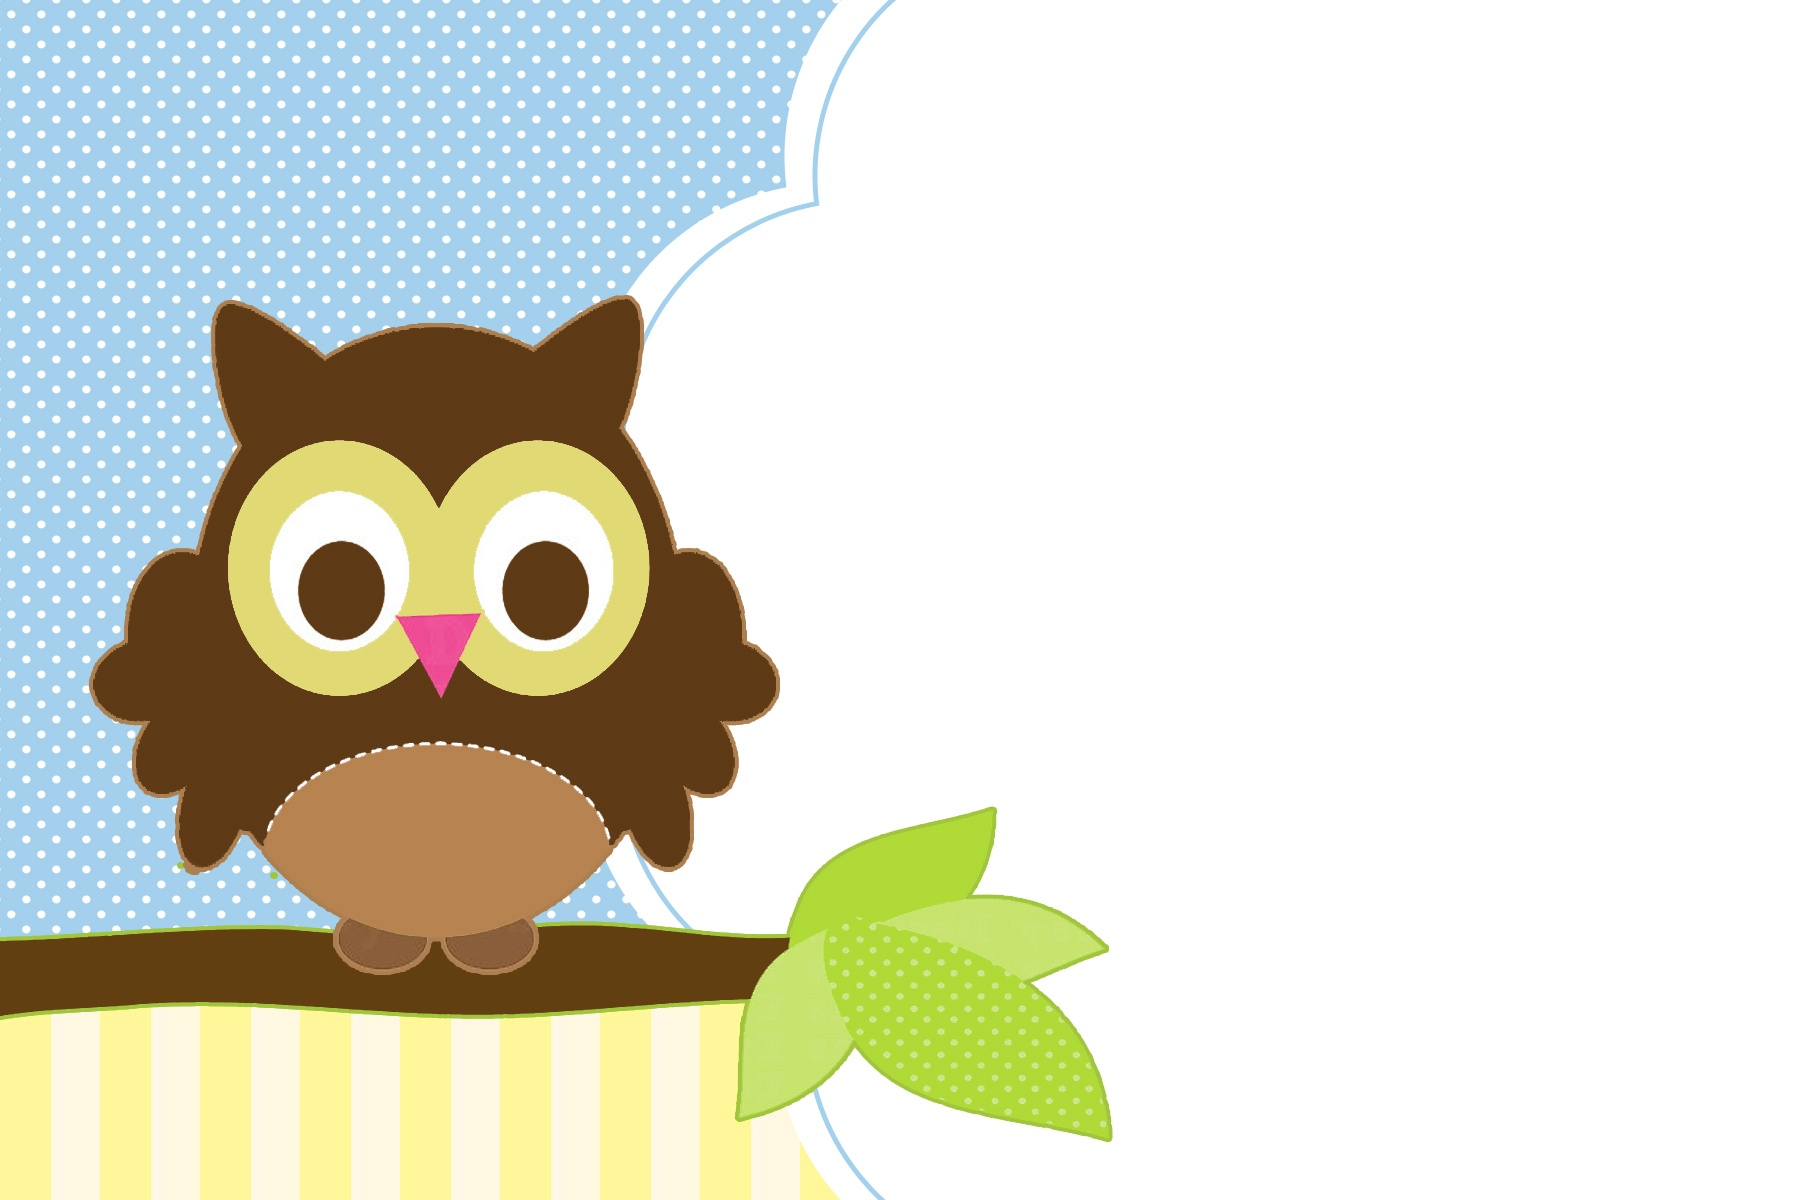 Free Owl Party Printables For Boy Parties - One Charming Day - Free Owl Printables